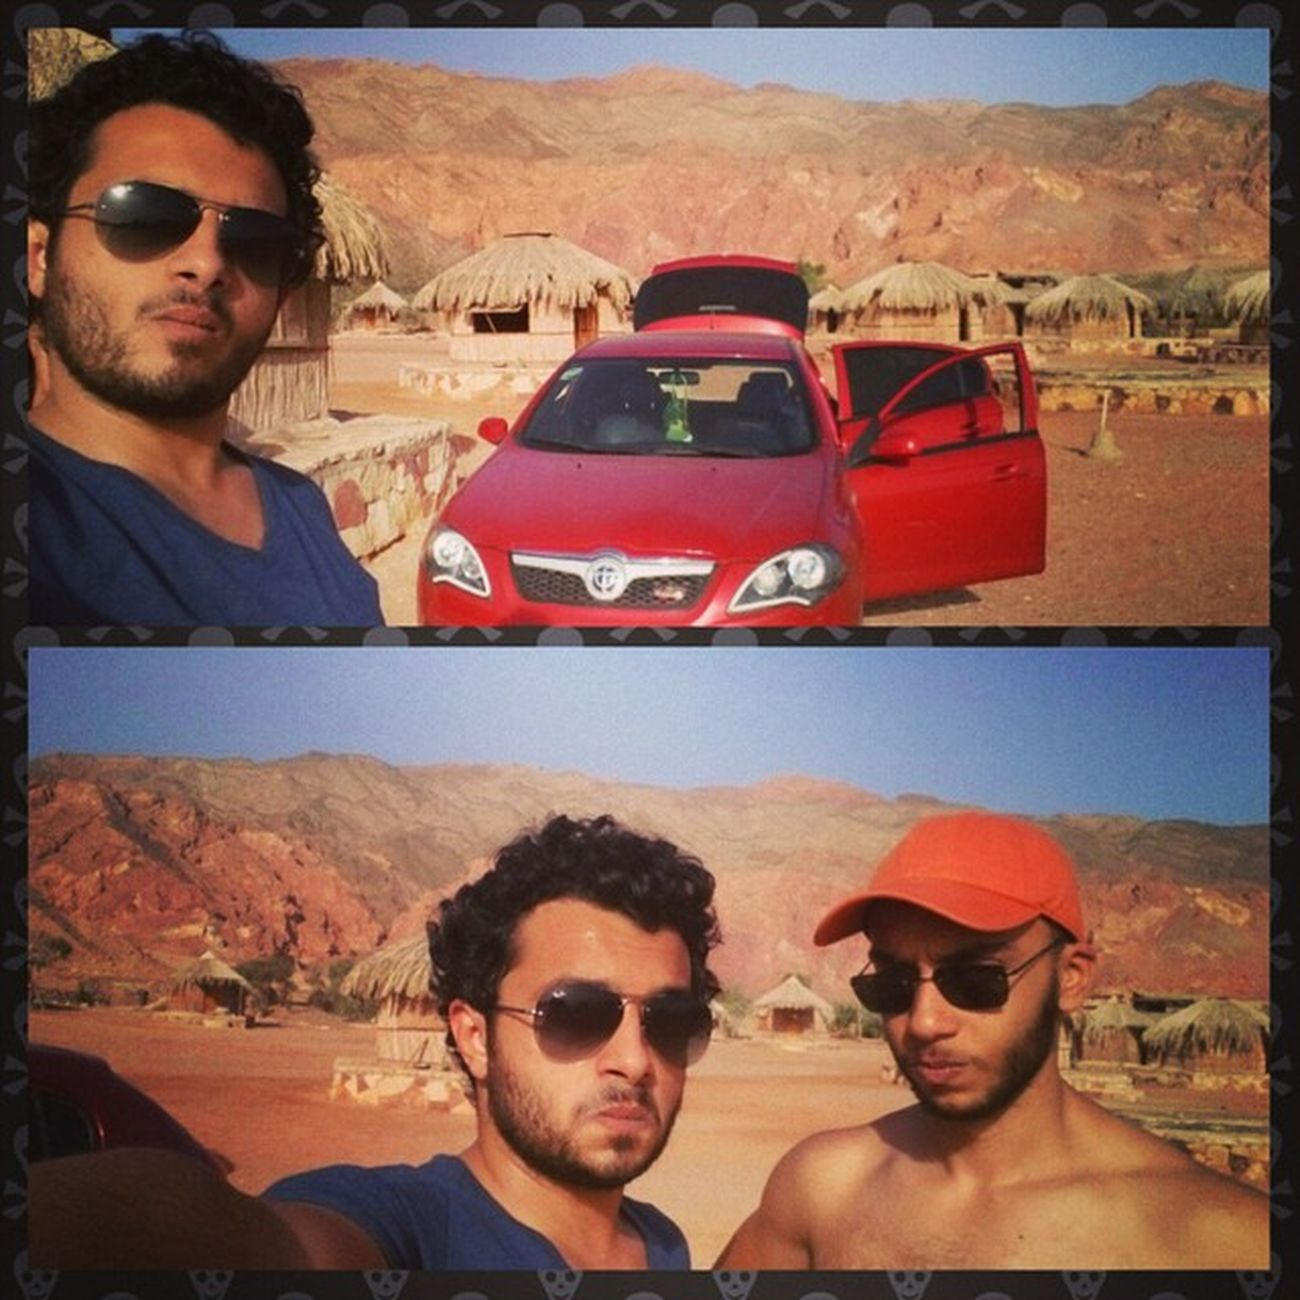 Selfie El_wada3 Leaving Sadness end vacation redsea sea sinai car brilliance fun friends